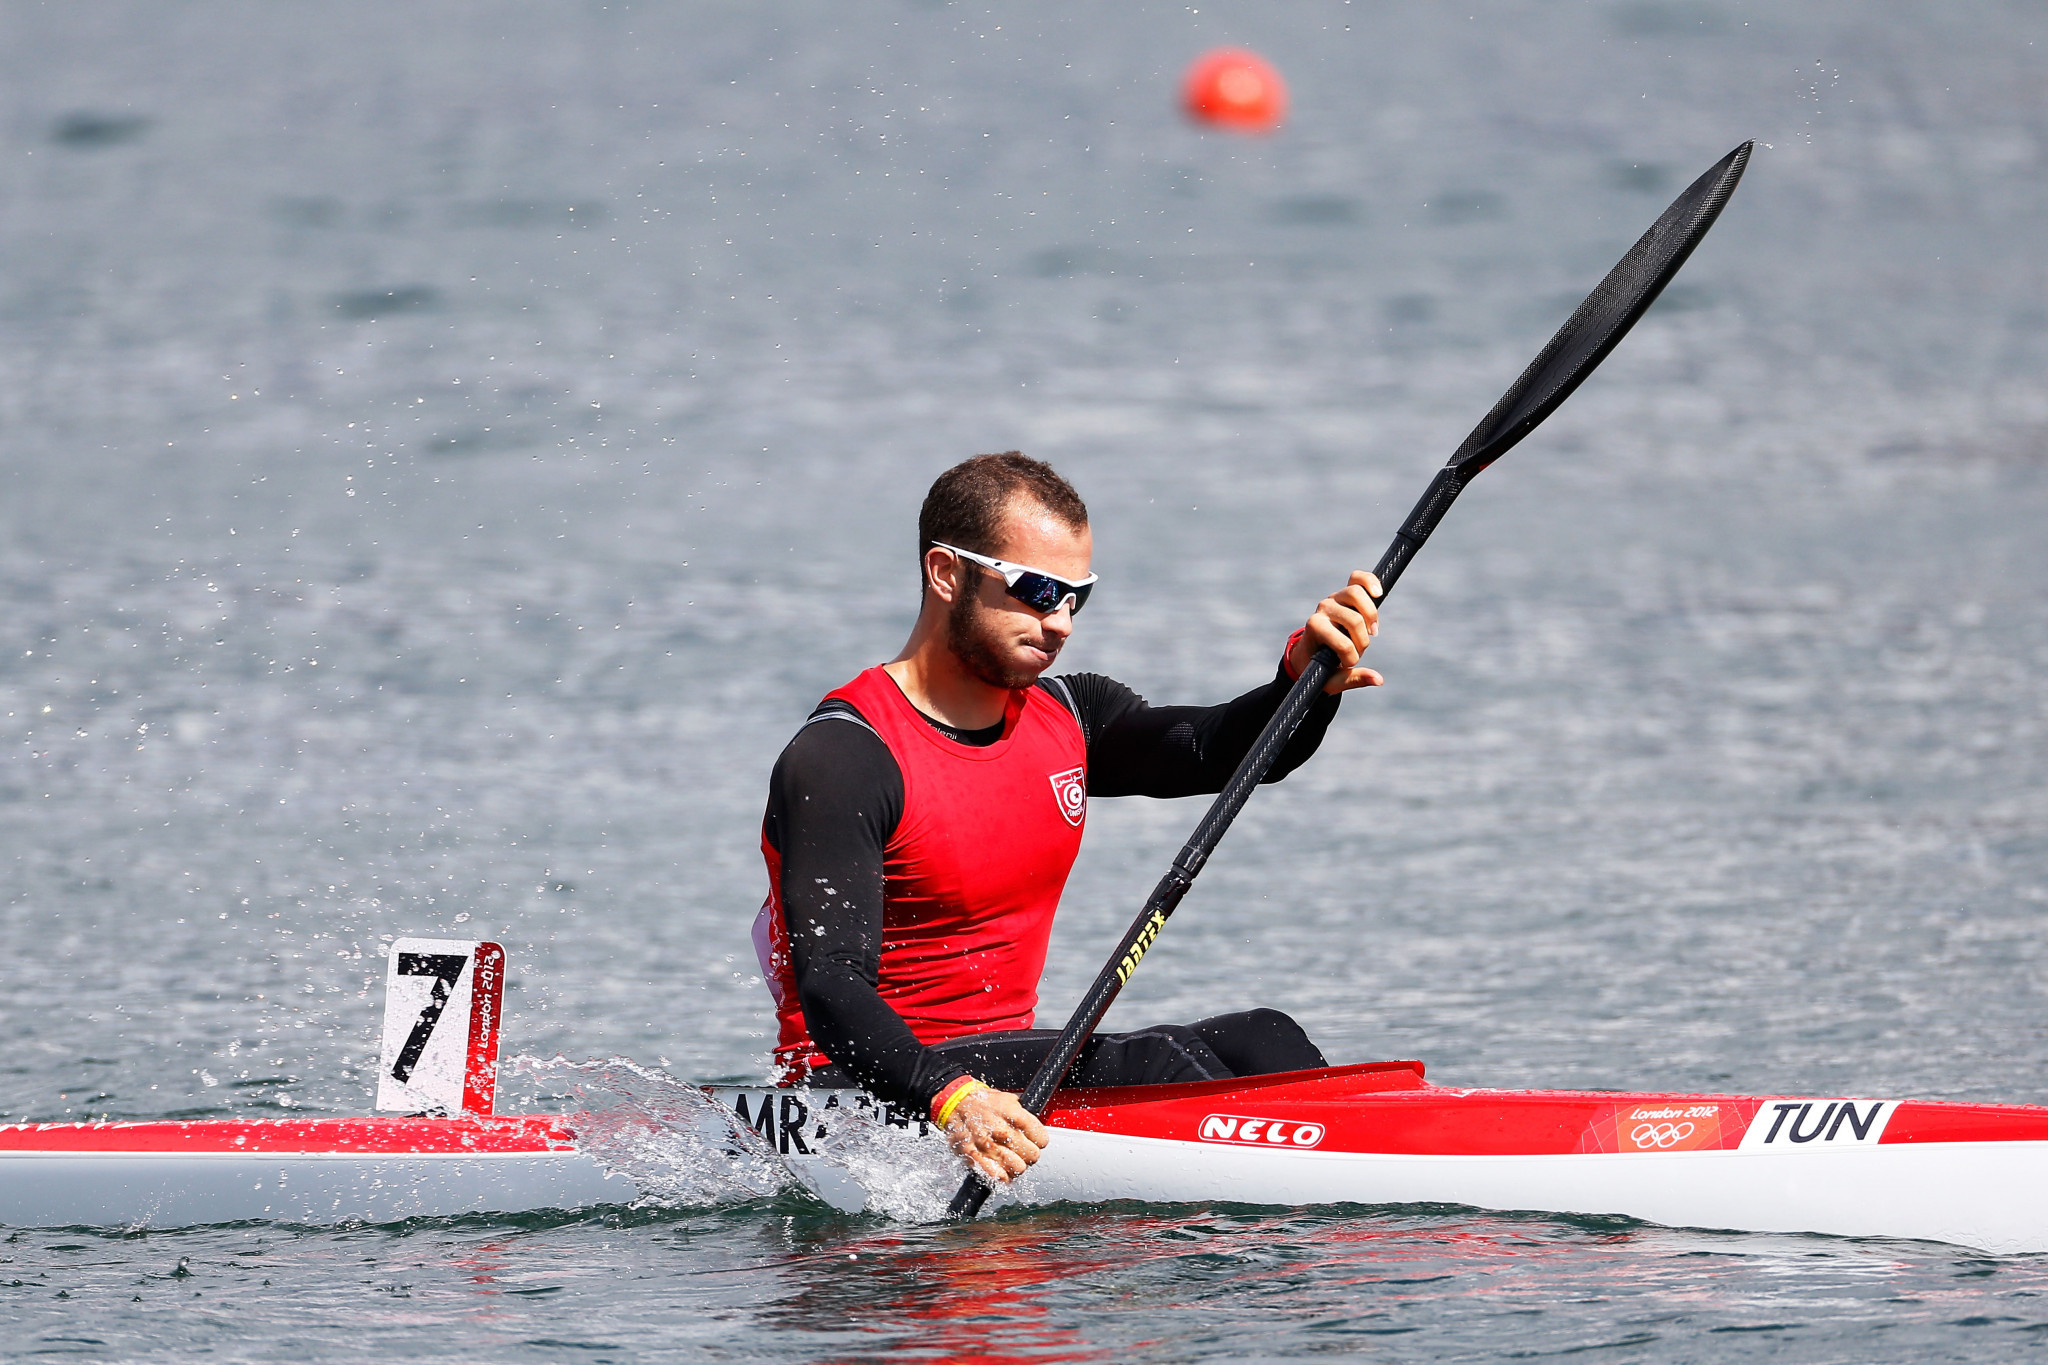 Tunisian canoeist Mohamed Ali Mrabet had a day to remember ©Getty Images